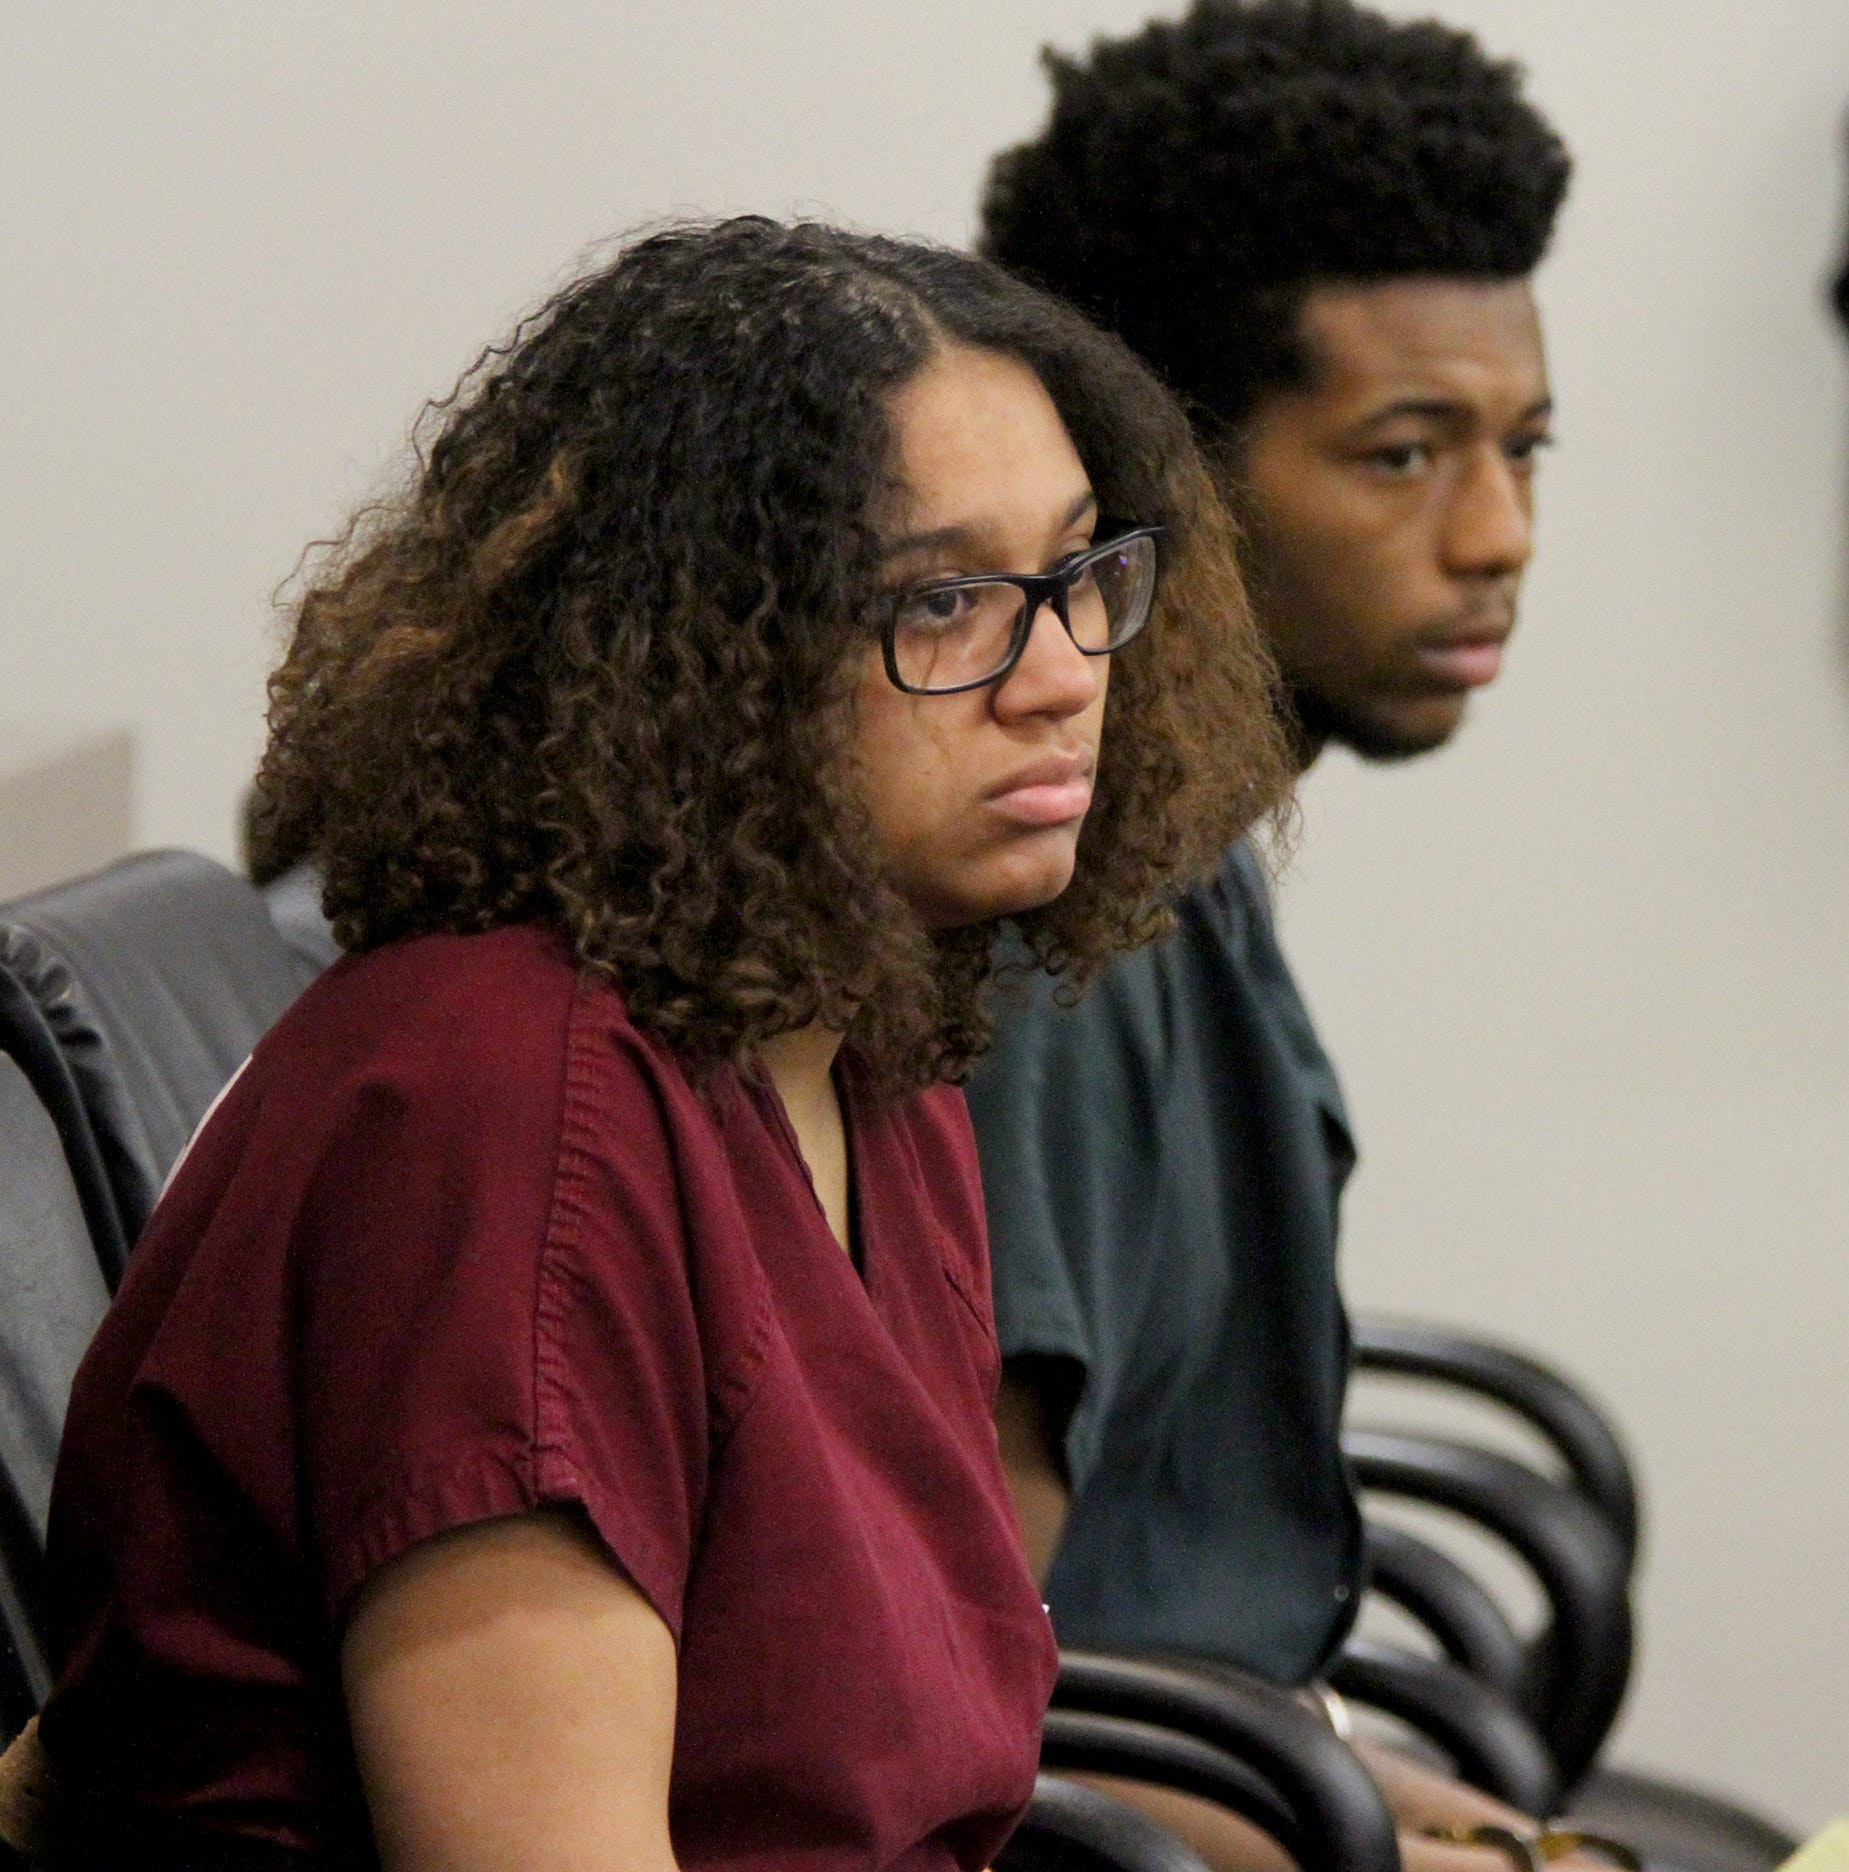 Courtroom in tears as teens accused in death of newborn baby in Neptune face judge